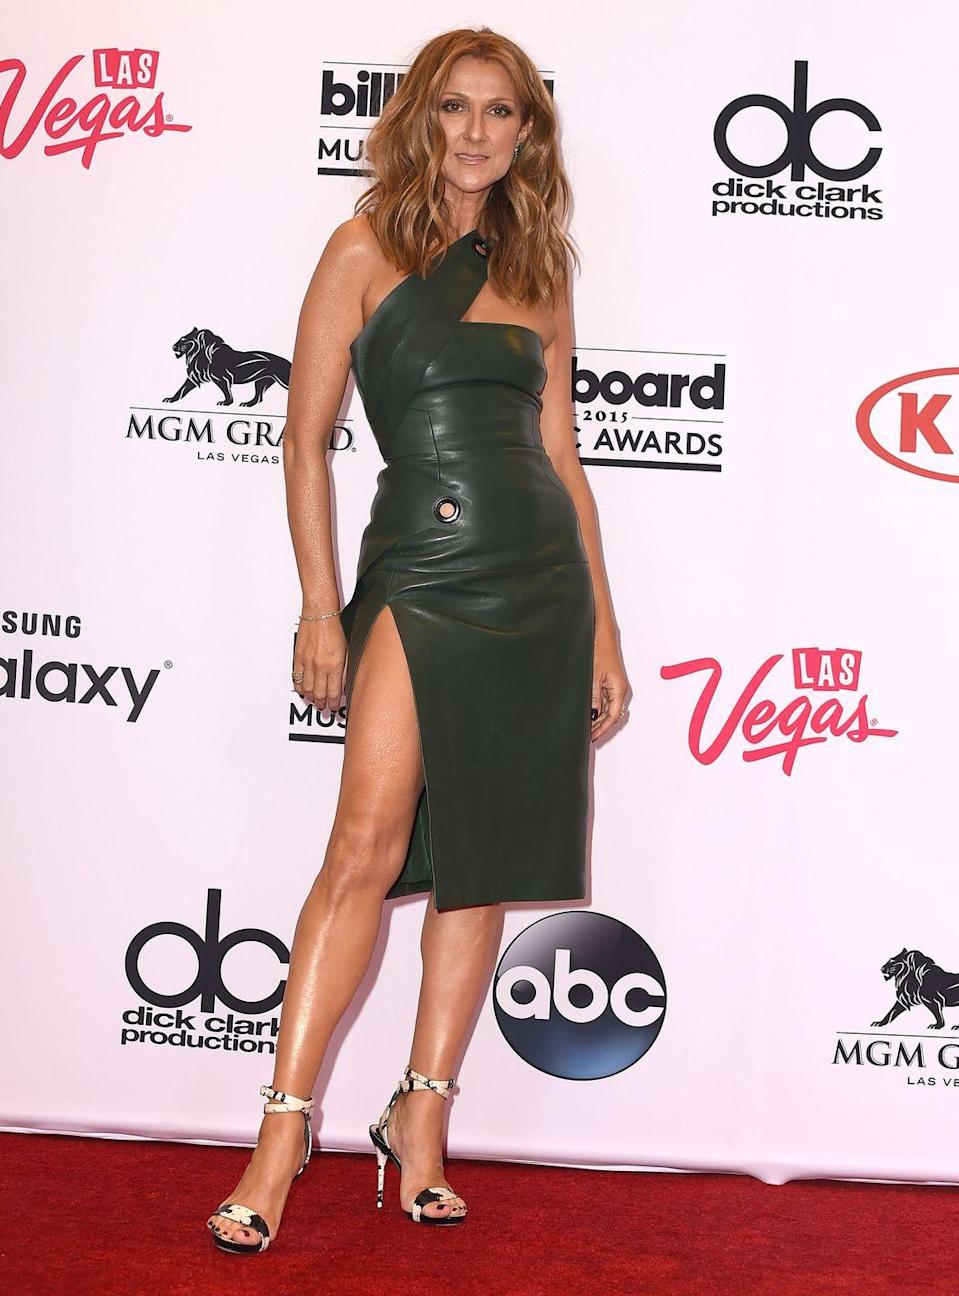 <p>The singer let out her edgy side with a one-shoulder leather minidress and animal-print heels. She covered her arms and legs in body shimmer and <em>literally</em> glowed.</p>